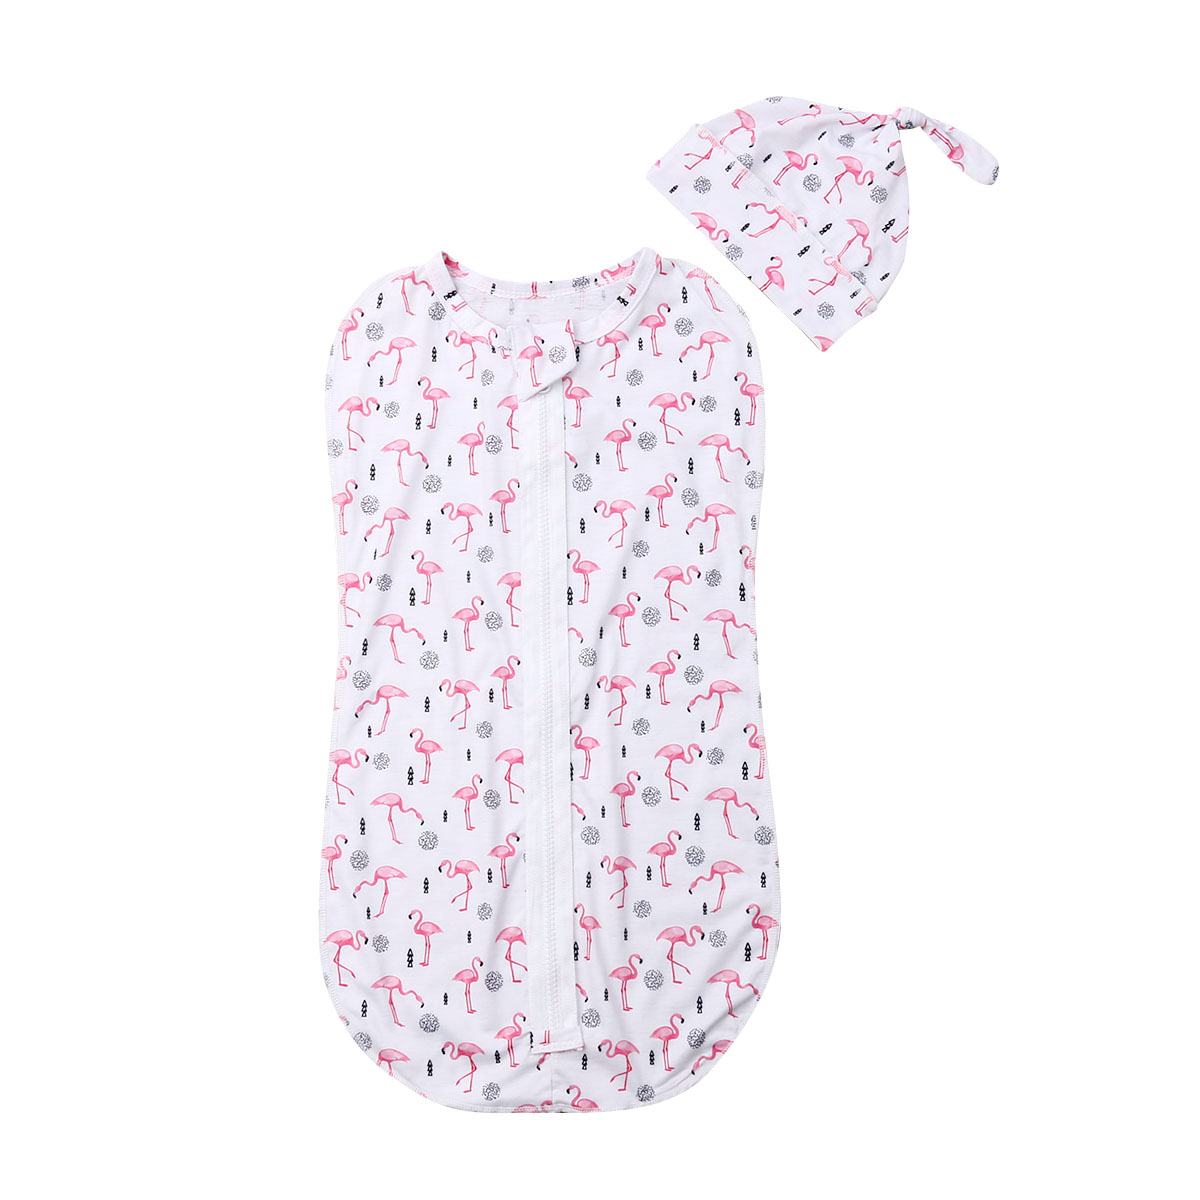 Pudcoco Cute Panta Print Baby Sleeping Bag For Newborns Infant Baby Cotton Zipper Swaddle Blanket Wrap Sleepwear 0-6M